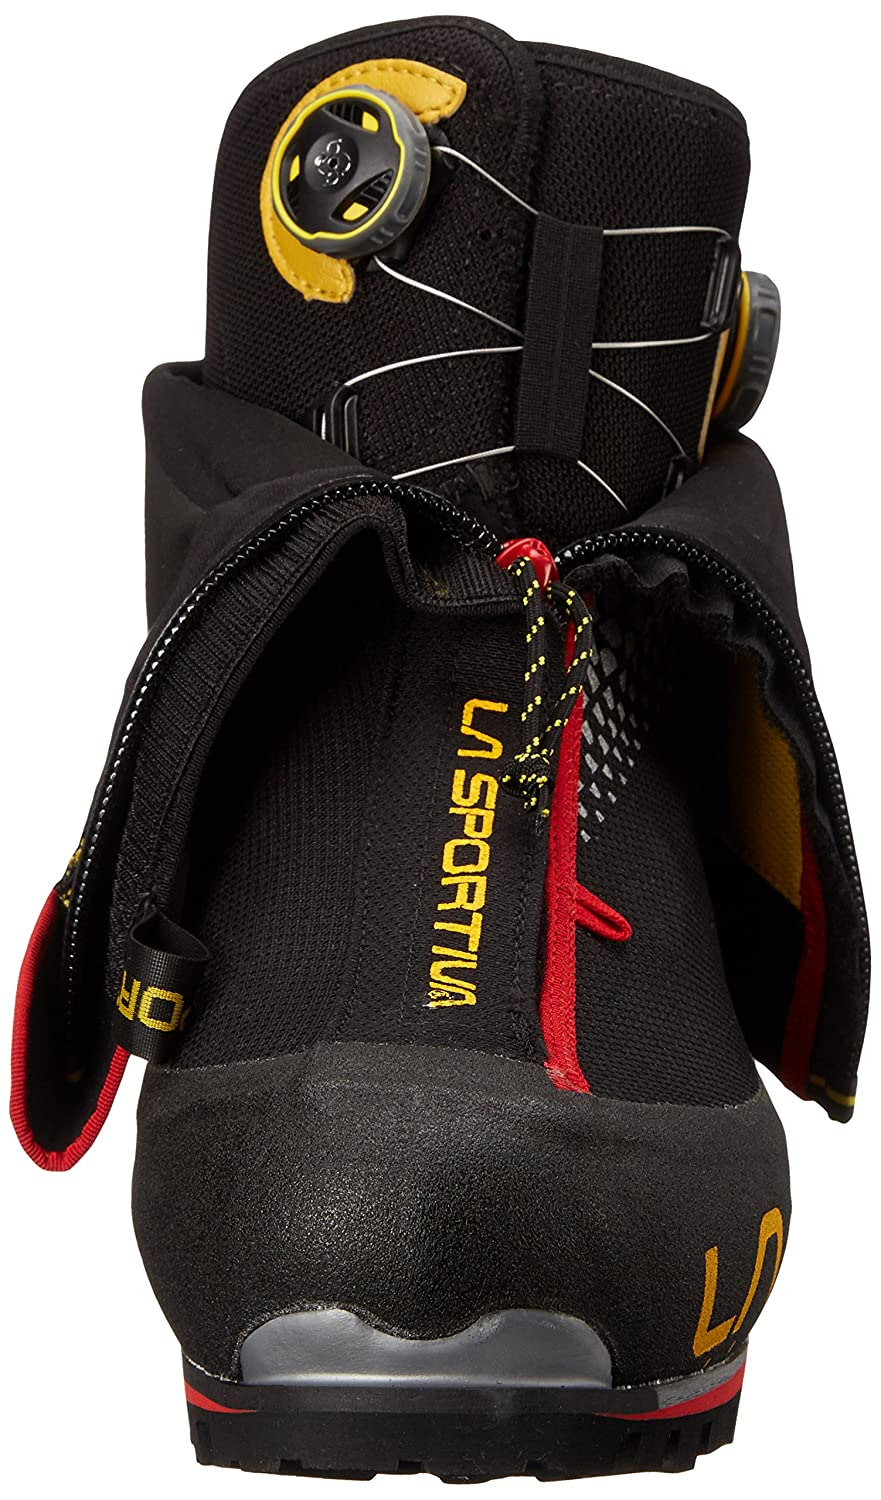 La Sportiva G2 SM Boot Men's Mountain Climbing Mountaineering Boot SM B00QUO2TUO 50 M EU|Black/Yellow 2e8c8e